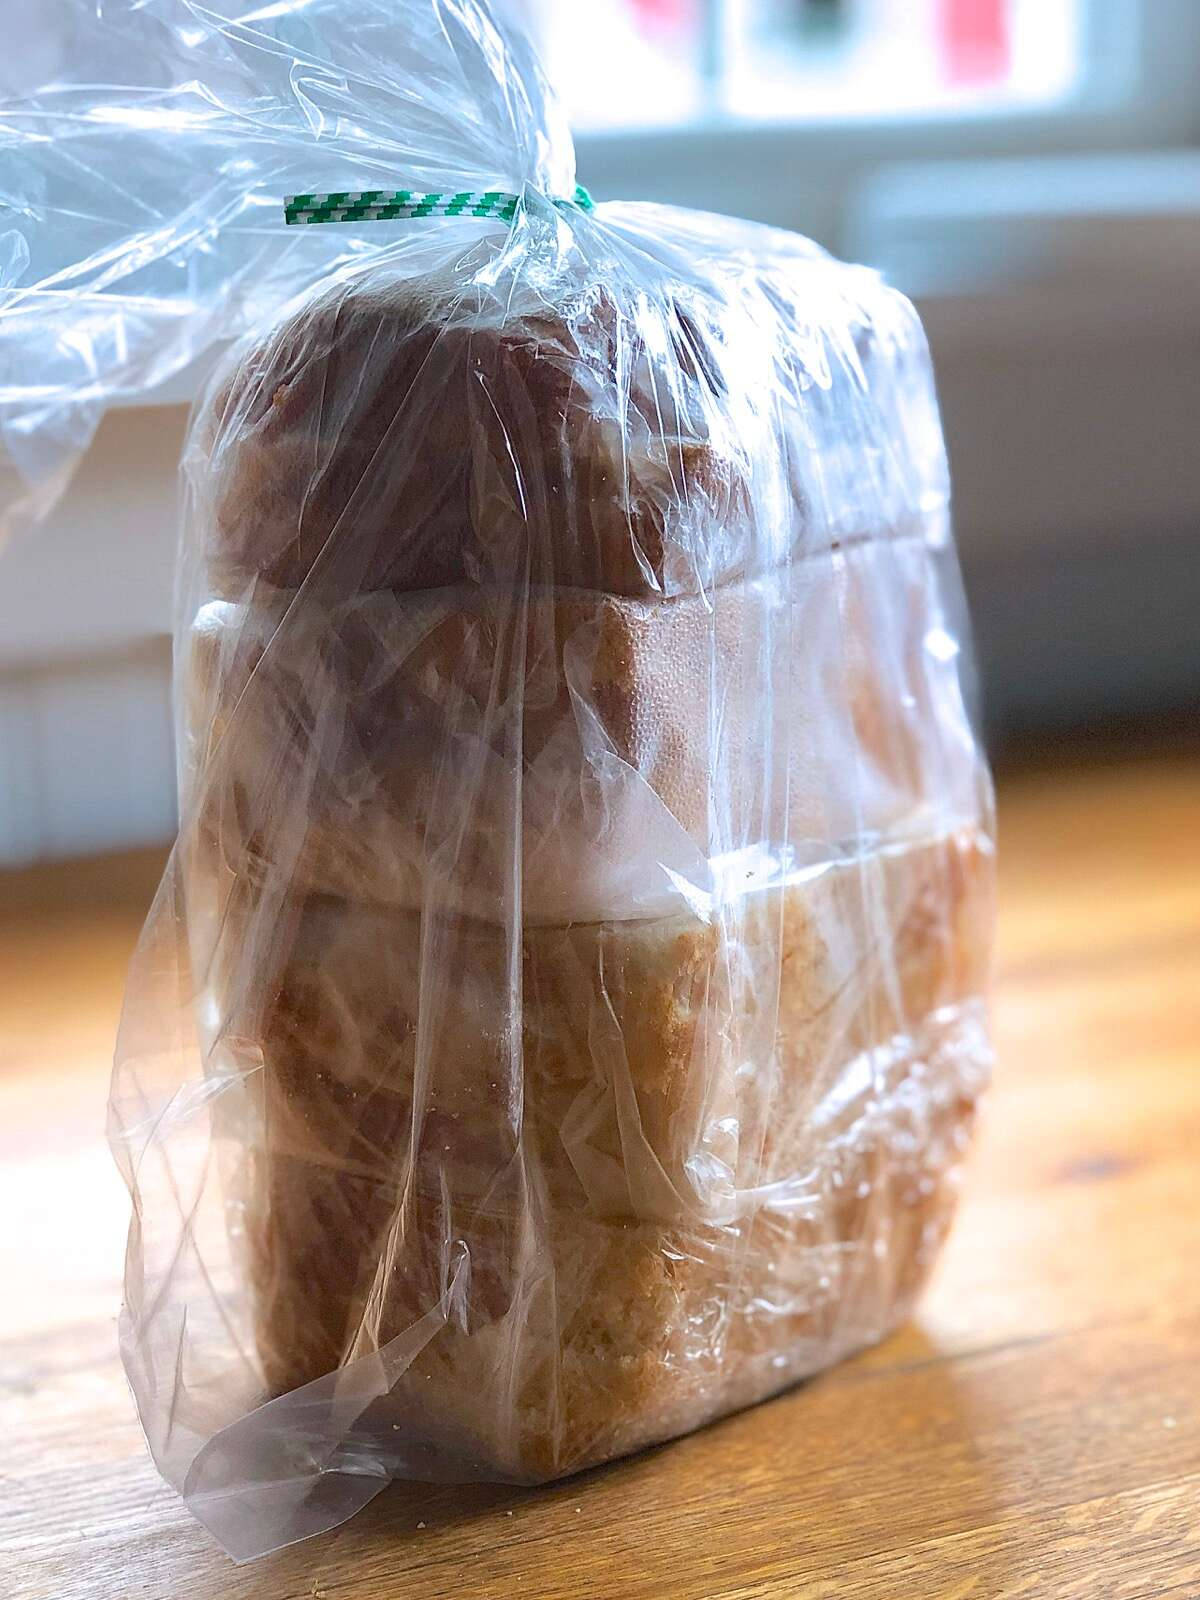 Individual packets of sandwich bread stored in a plastic bag, ready for the freezer.